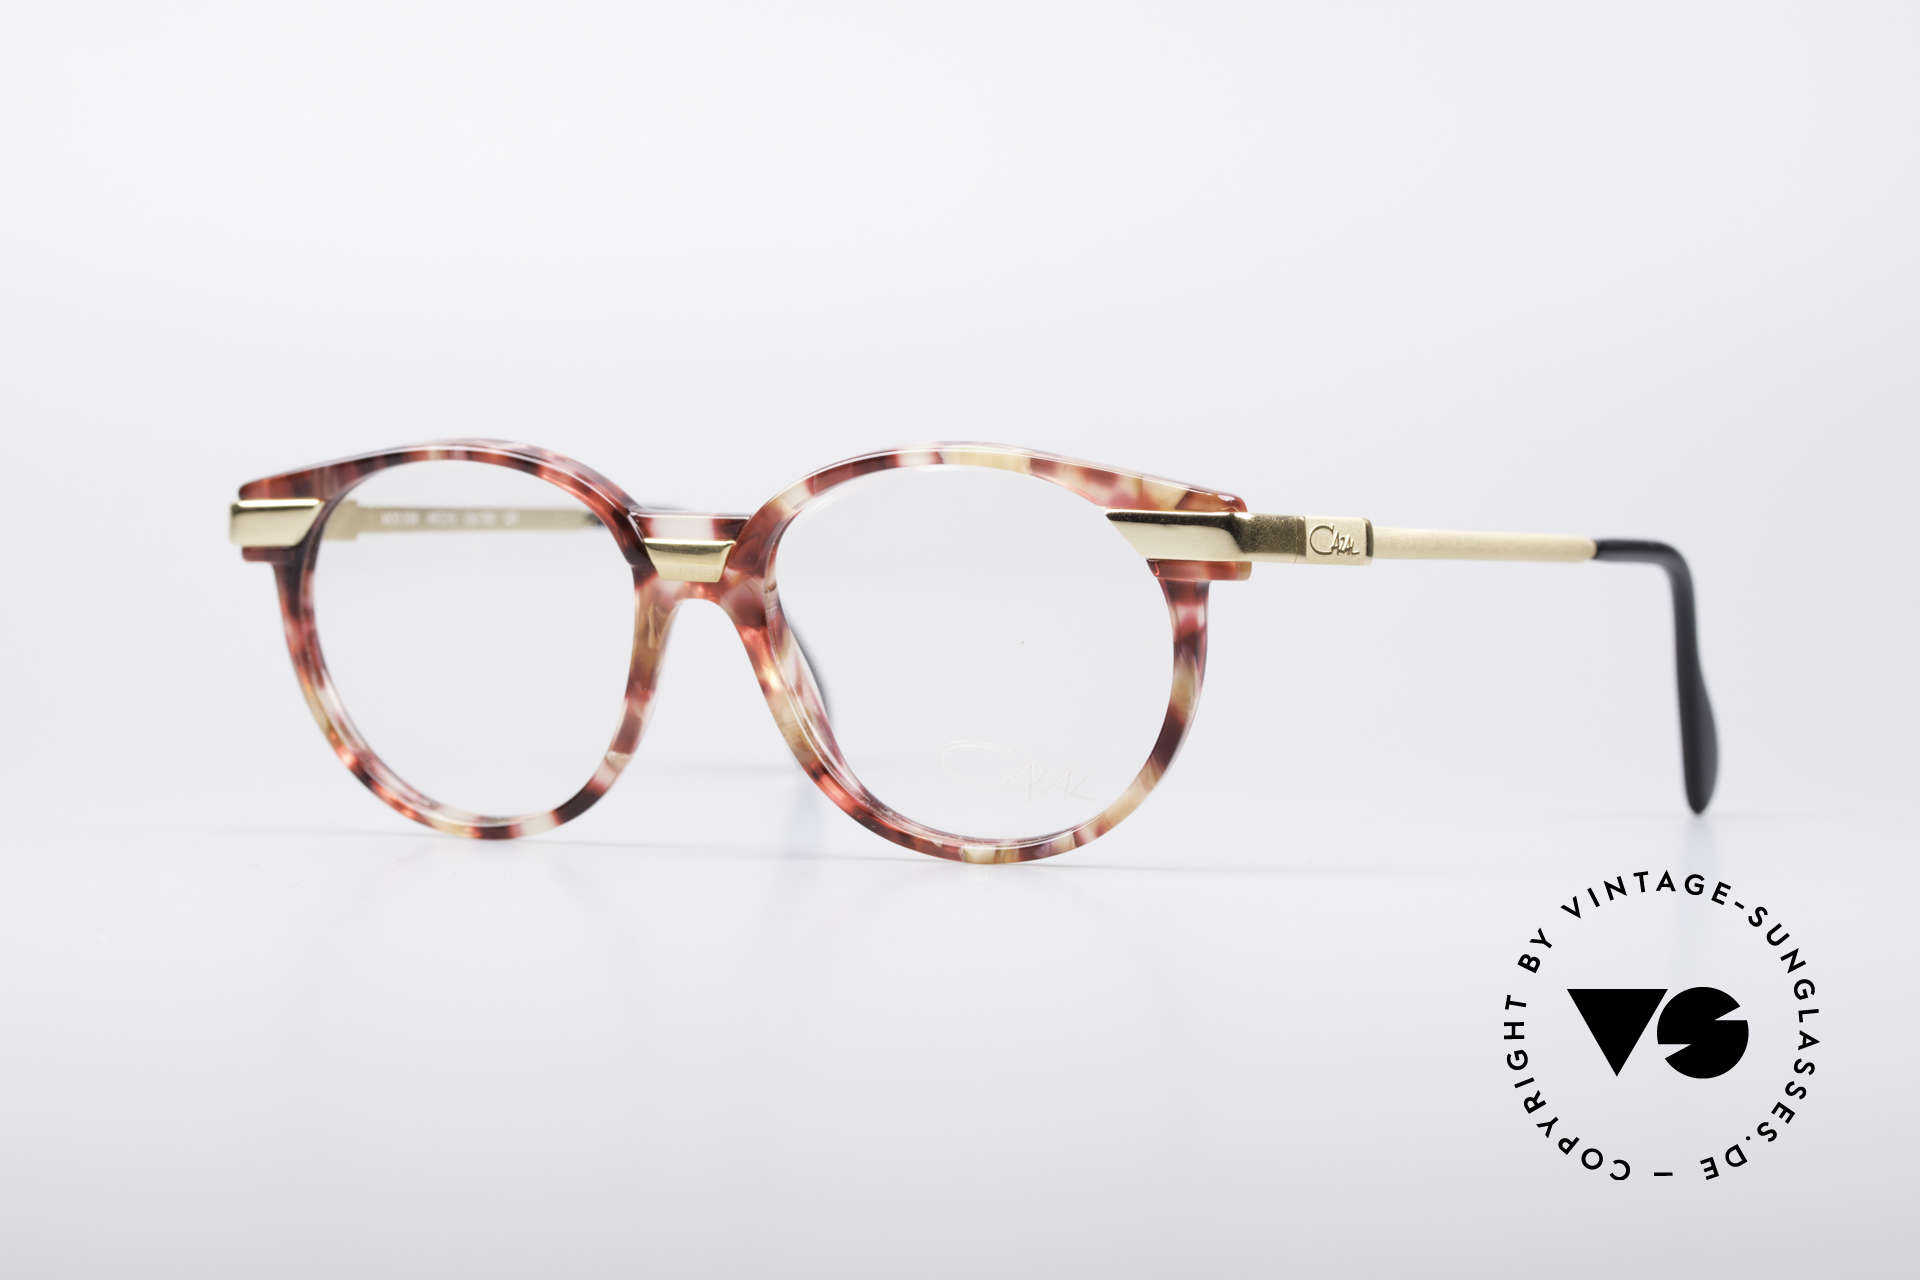 Cazal 338 Small Round Vintage Frame, small round Cazal vintage glasses from the early 90's, Made for Men and Women